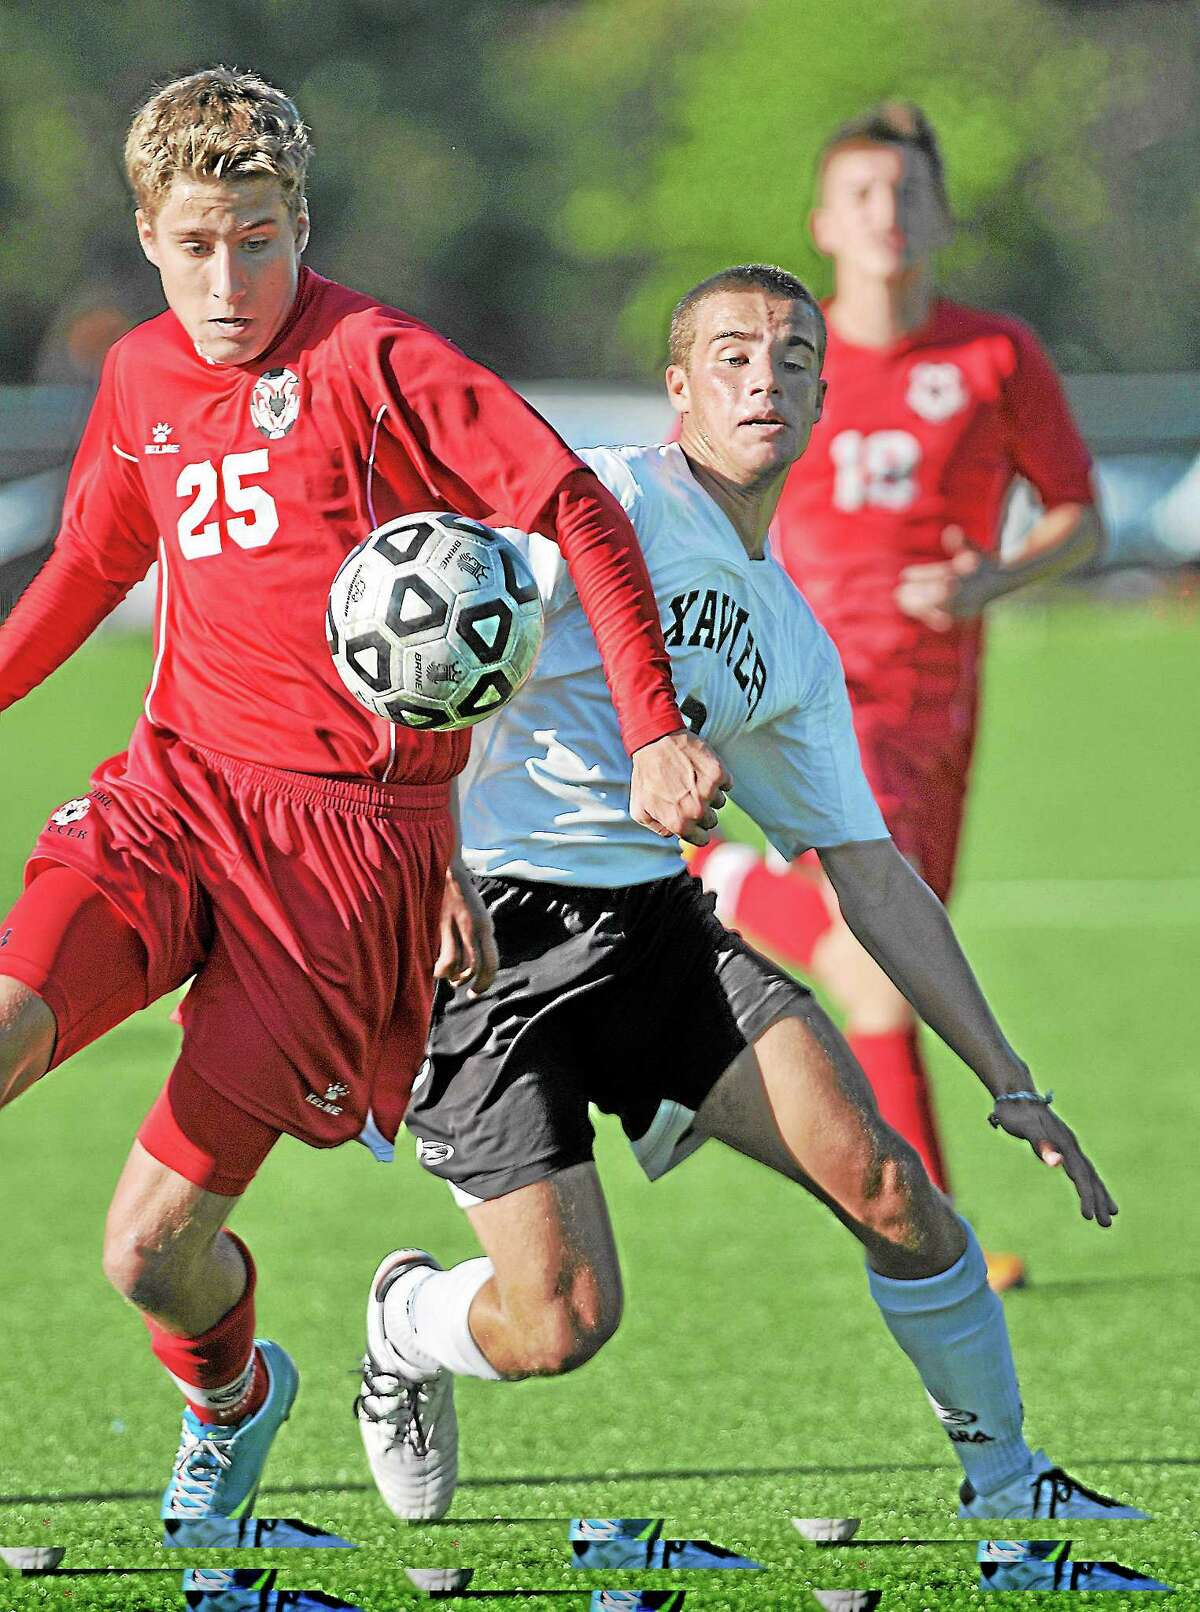 Catherine Avalone — The Middletown Press Xavier's Brendan Charton battles Griffin Andes near the Cheshire goal in the second half of Tuesday's game at TD Bank Oakwood Soccer Park in Portland. The game ended in a 0-0 tie.